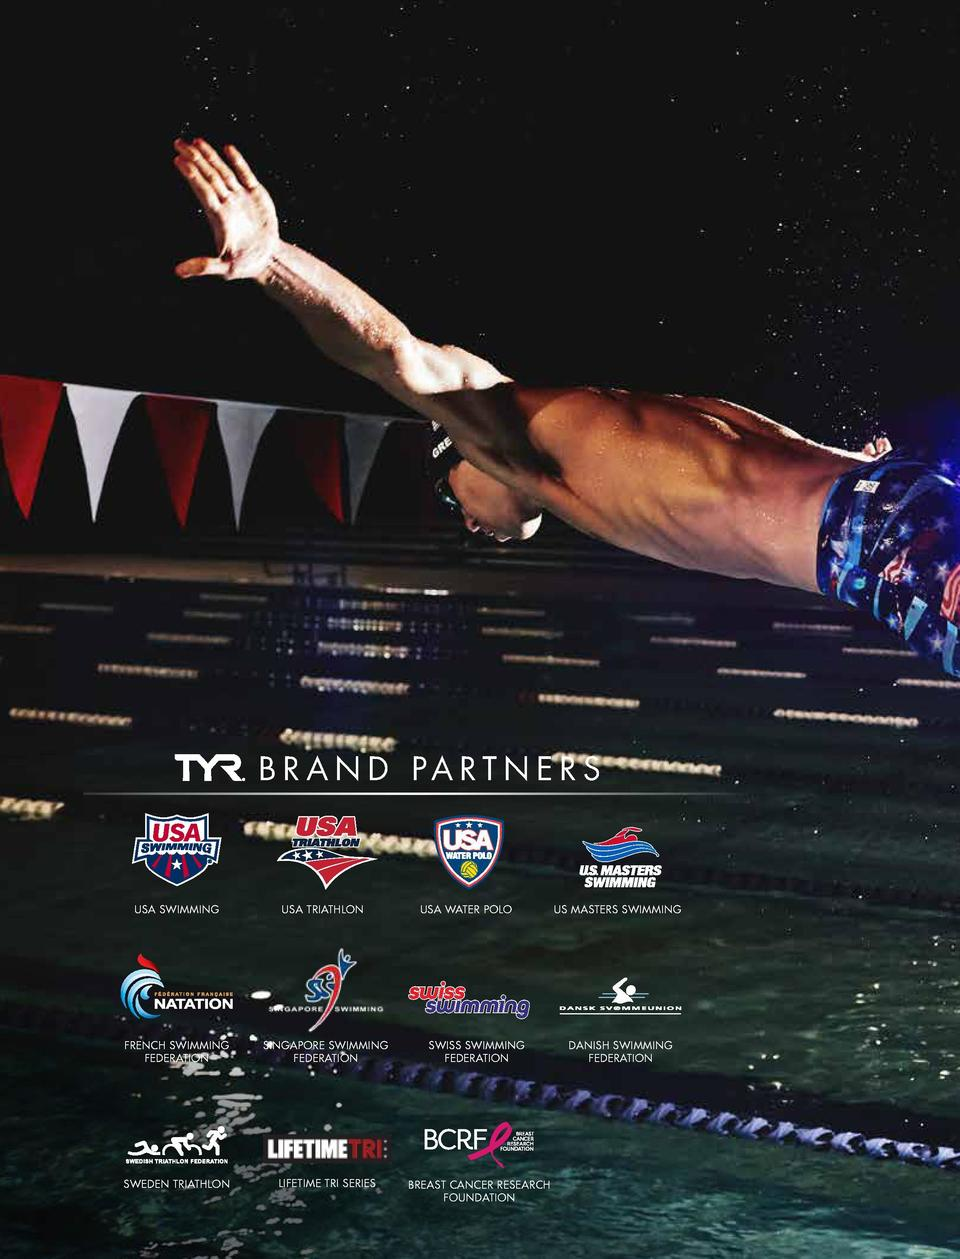 MATT GREVERS   4X Olympic Gold Medalist   6X World Championship Gold Medalist  B R A N D PA R T N E R S  USA SWIMMING  USA...